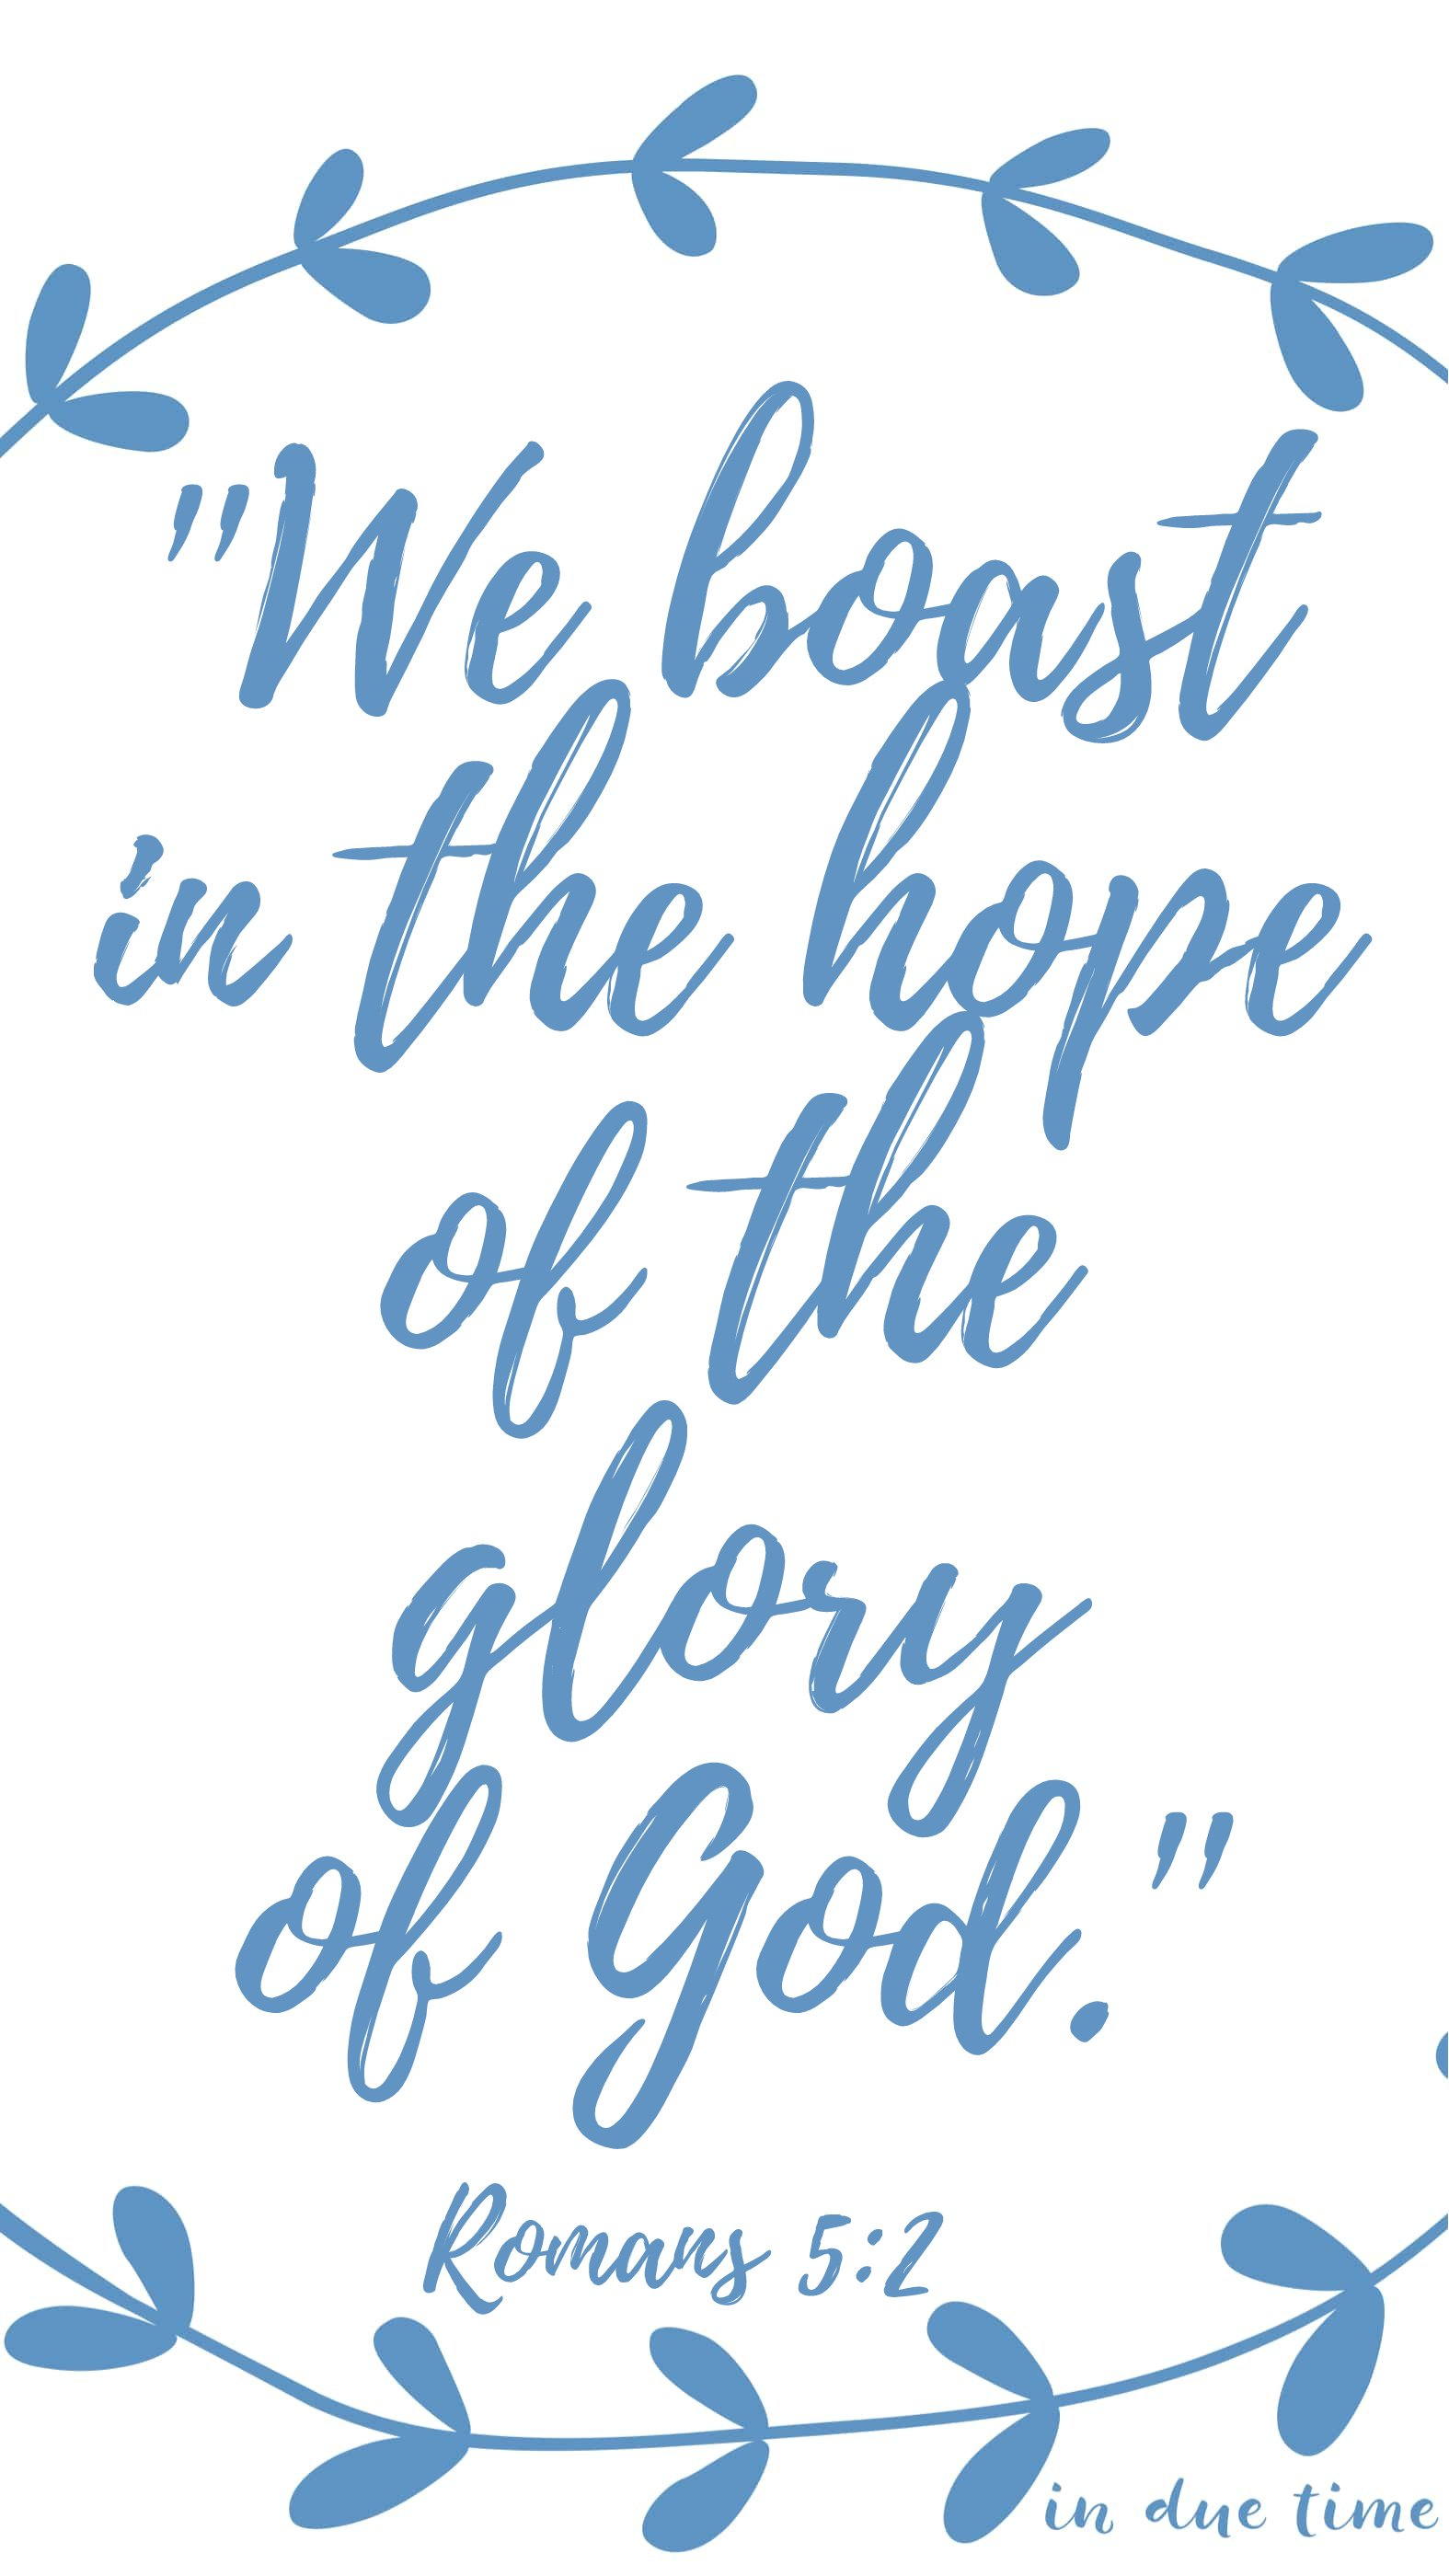 romans 5 we boast in the hope of the glory of God